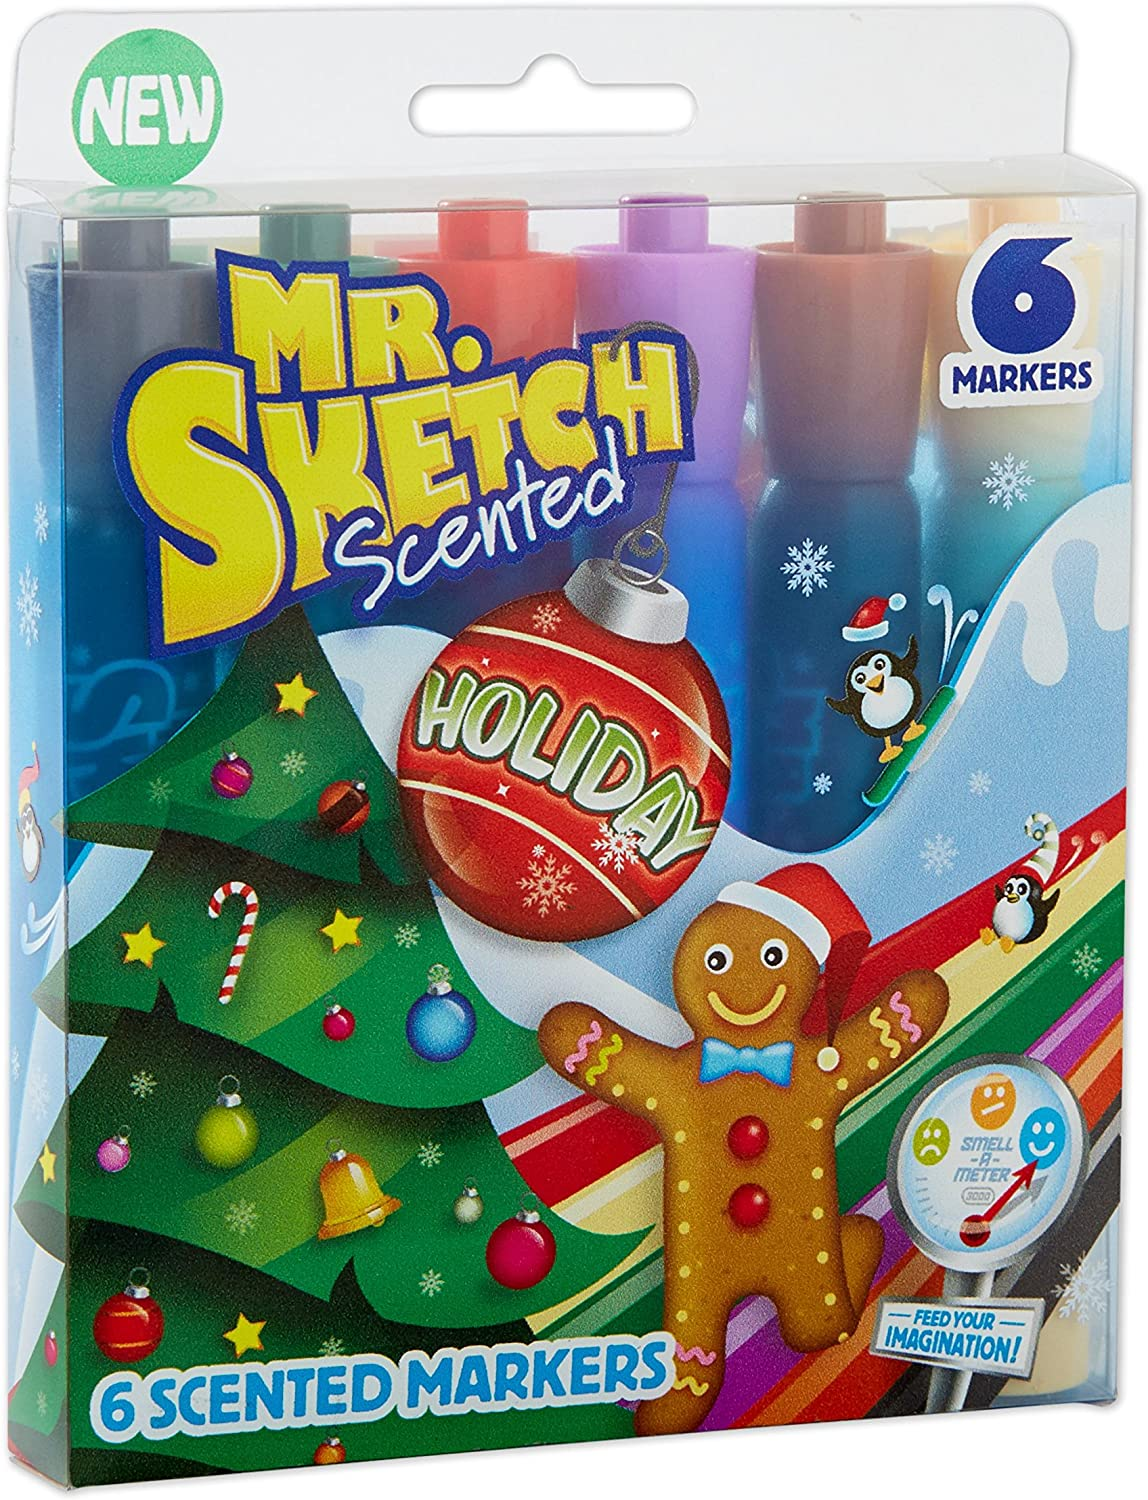 Mr. Sketch Scented Markers, Chisel Tip, Holiday Colors , 6-Count: Office Products